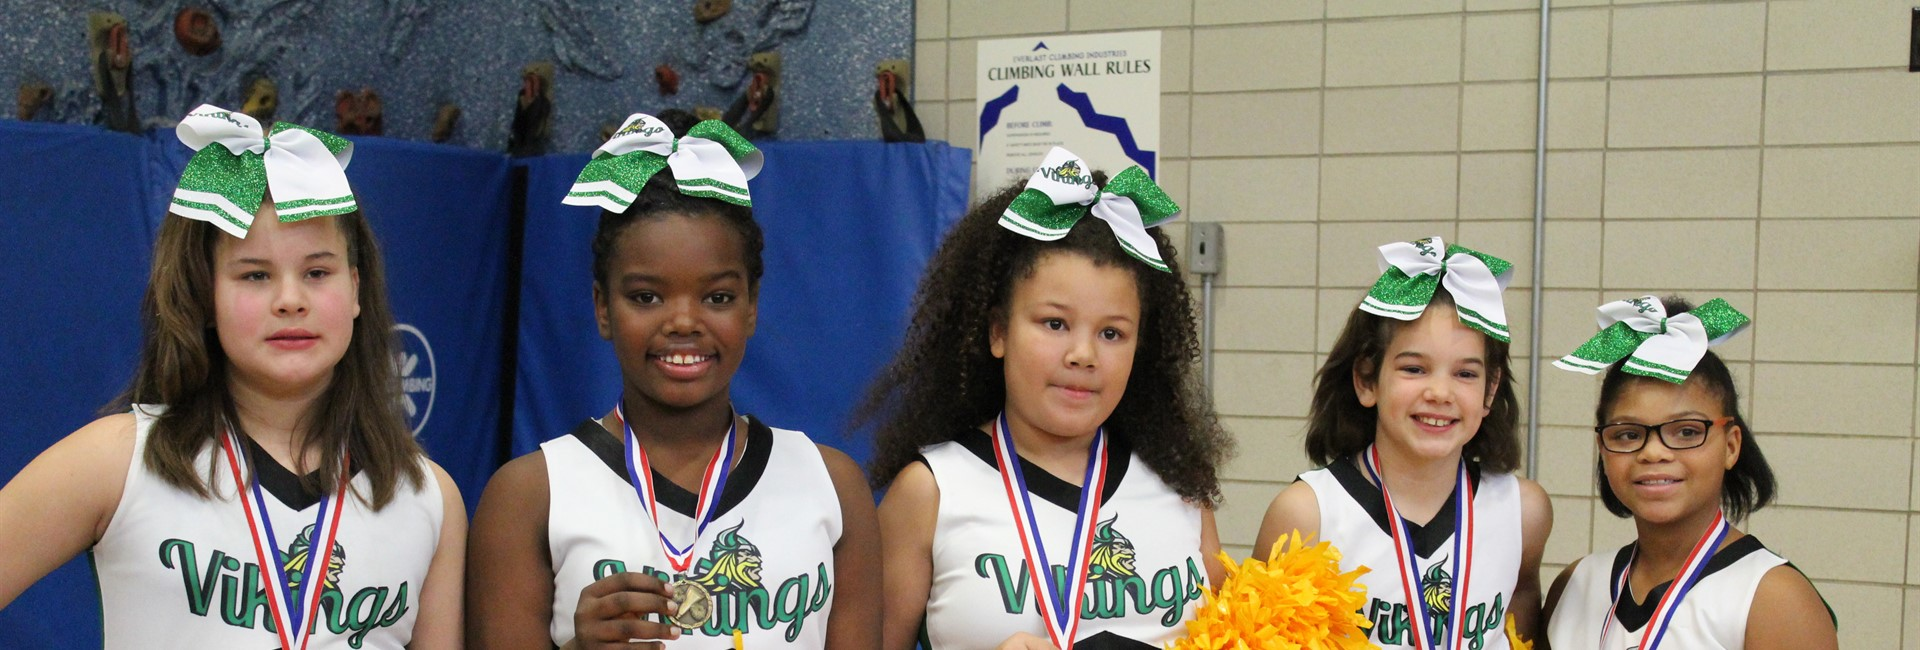 Cheerleaders from Ninth District pose for a quick picture after winning a medal at competition.